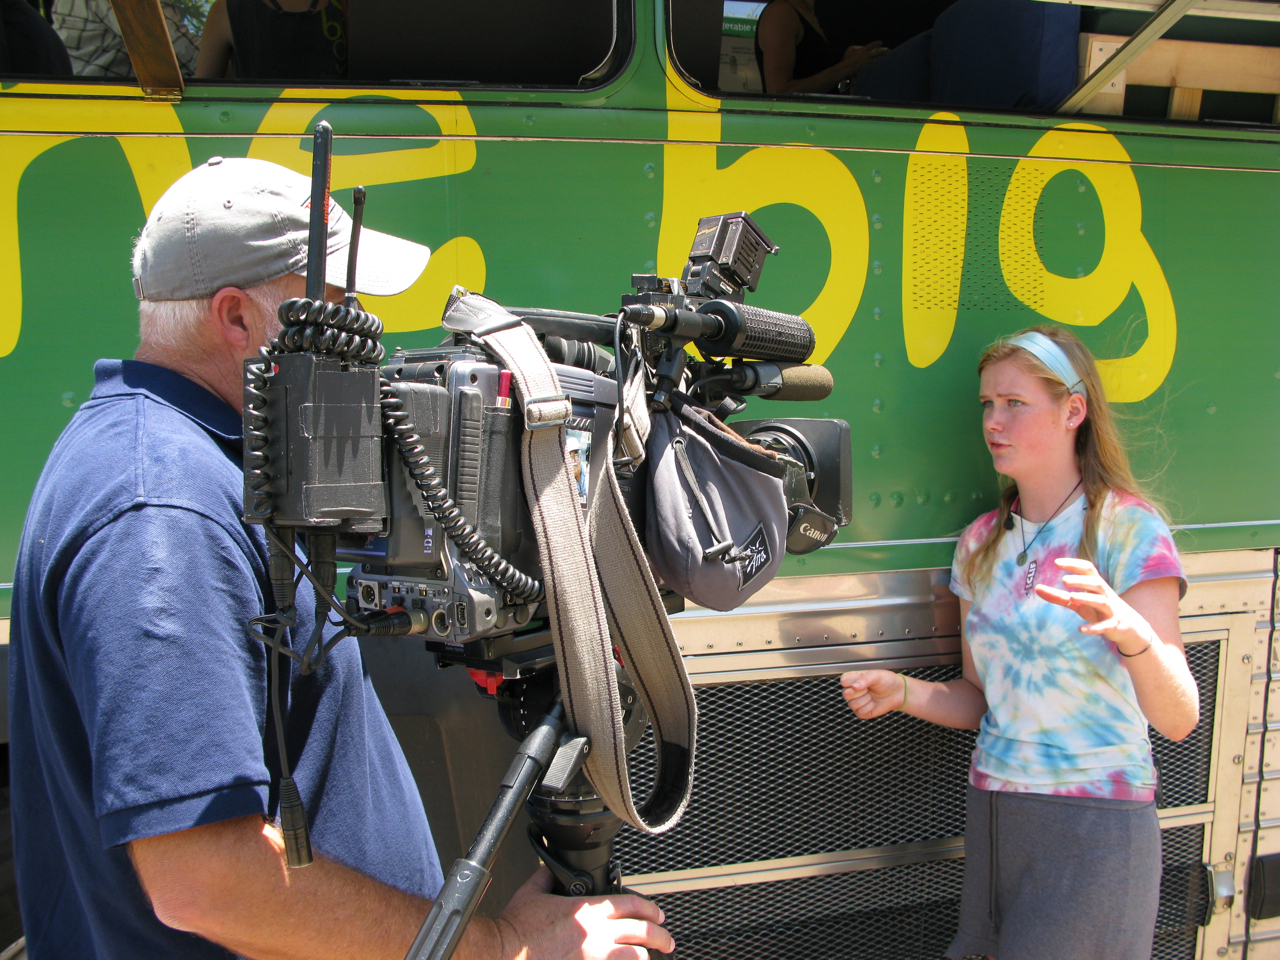 Anna, a Dartmouth sophomore from the Big Green Bus, being interviewed for the local news. The Big Green Bus is greeted by cameras wherever they go.